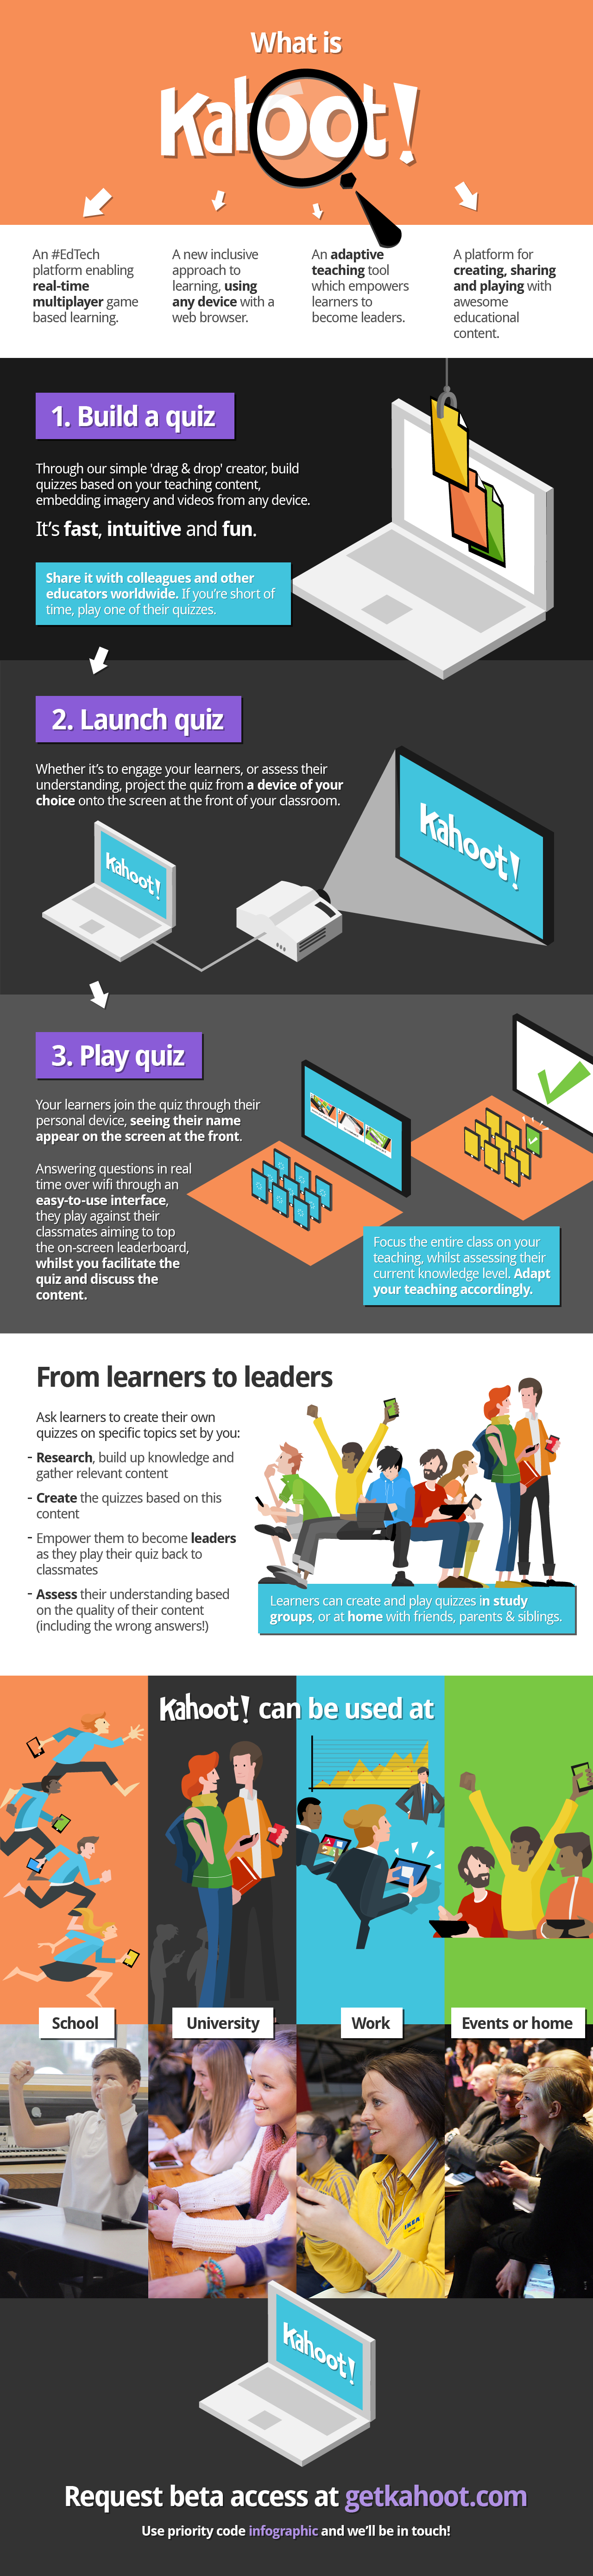 kahoot  infographic